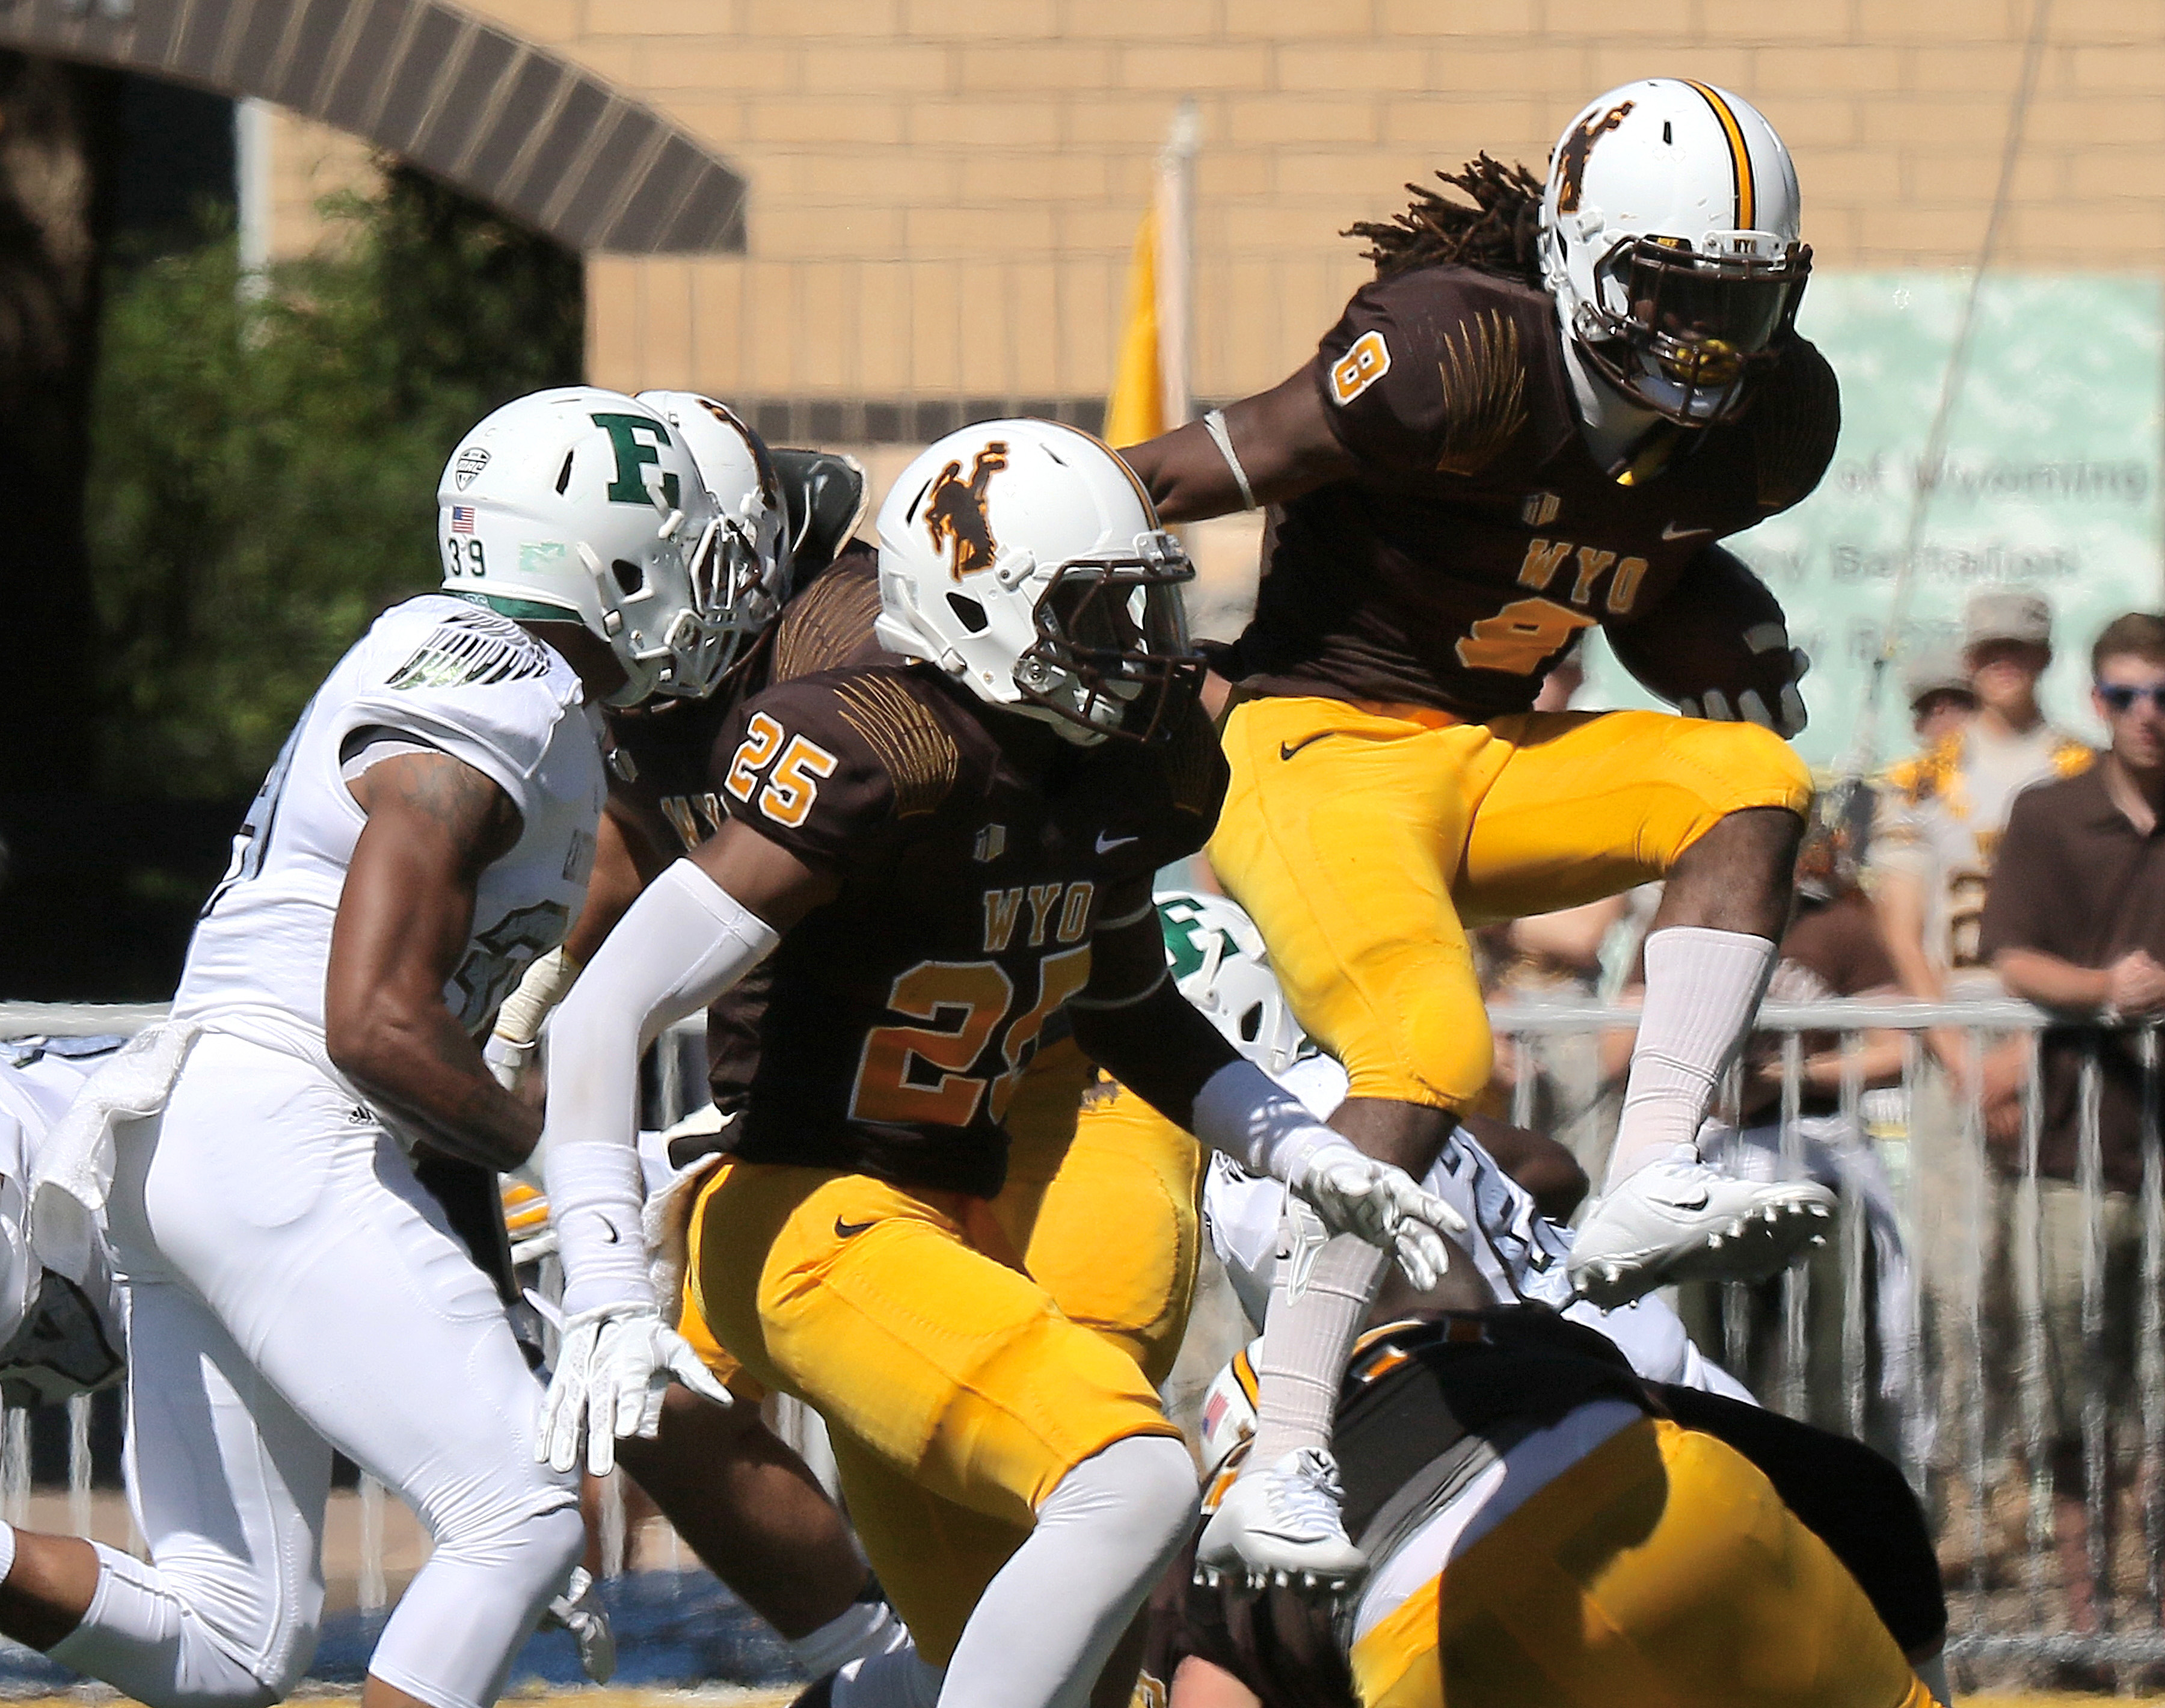 University of Wyoming running back Brian Hill hurdles a pile of players in the first half of an NCAA college football game against Eastern Michigan University on Saturday, Sept. 12, 2015, in Laramie, Wyo. (AP Photo/Blaine McCartney)